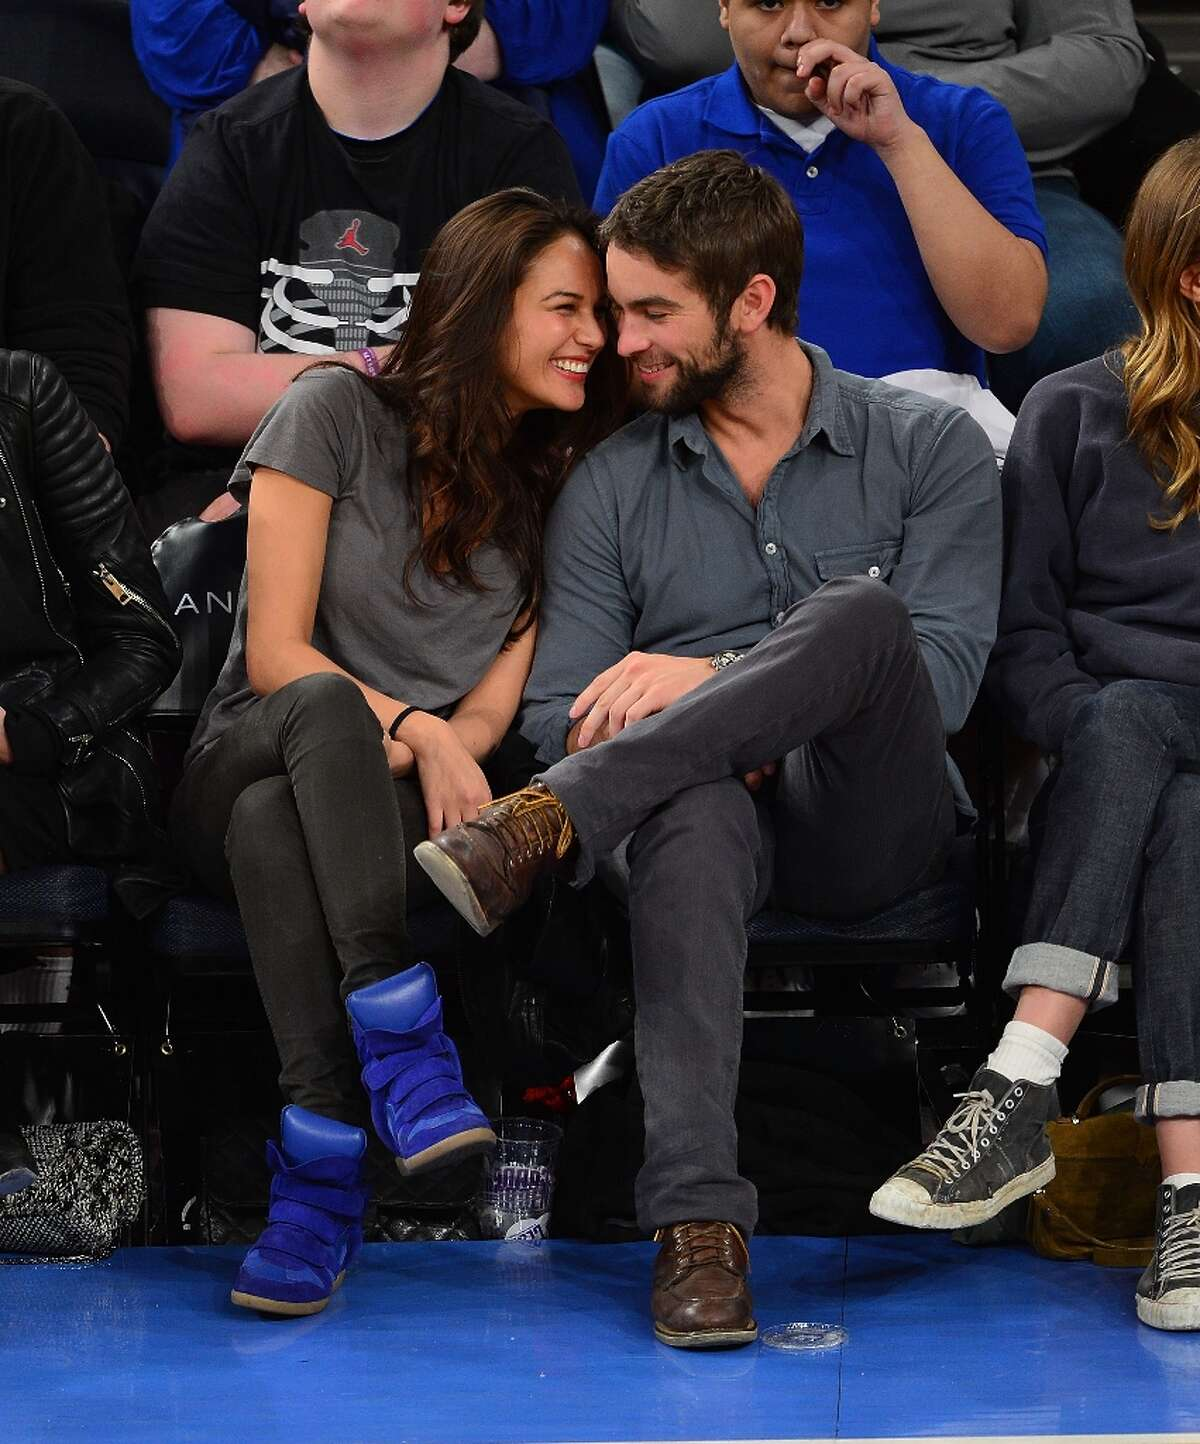 Chace Crawford (R) and cuddles with rumored new girlfriend Rachelle Goulding at the Charlotte Bobcats vs New York Knicks game at Madison Square Garden on March 29, 2013 in New York City.